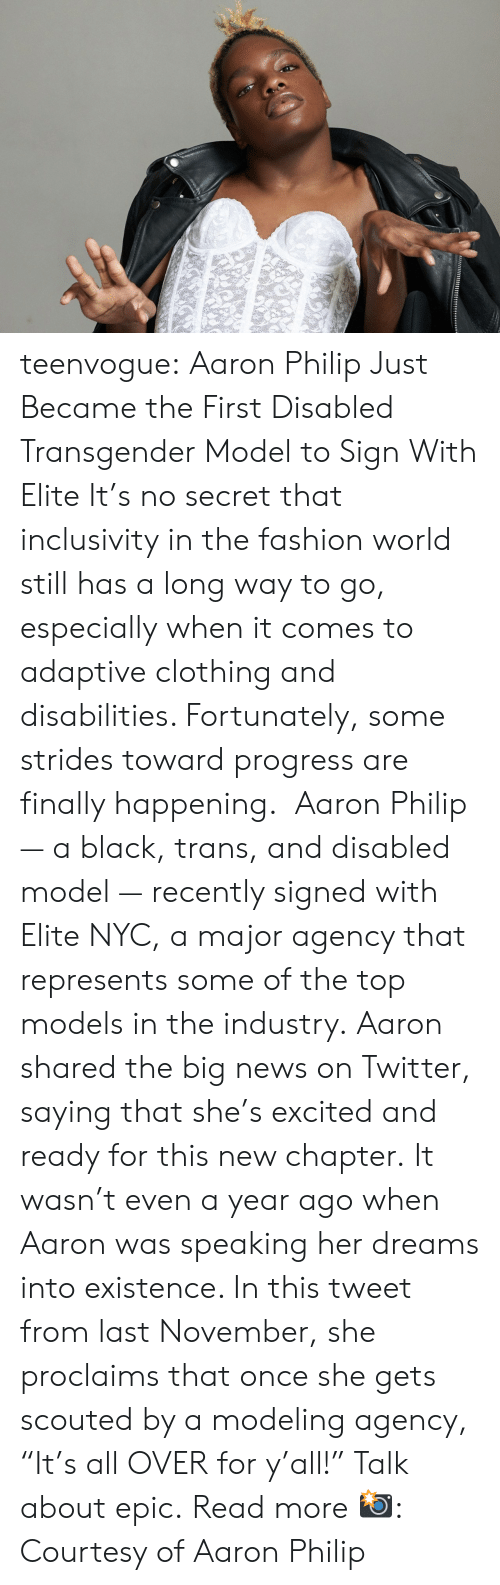 """top models: teenvogue: Aaron Philip Just Became the First Disabled Transgender Model to Sign With Elite It's no secret that inclusivity in the fashion world still has a long way to go, especially when it comes to adaptive clothing and disabilities. Fortunately, some strides toward progress are finally happening. Aaron Philip — a black, trans, and disabled model — recently signed with Elite NYC, a major agency that represents some of the top models in the industry. Aaron shared the big news on Twitter, saying that she's excited and ready for this new chapter. It wasn't even a year ago when Aaron was speaking her dreams into existence. In this tweet from last November, she proclaims that once she gets scouted by a modeling agency, """"It's all OVER for y'all!"""" Talk about epic. Read more 📸: Courtesy of Aaron Philip"""